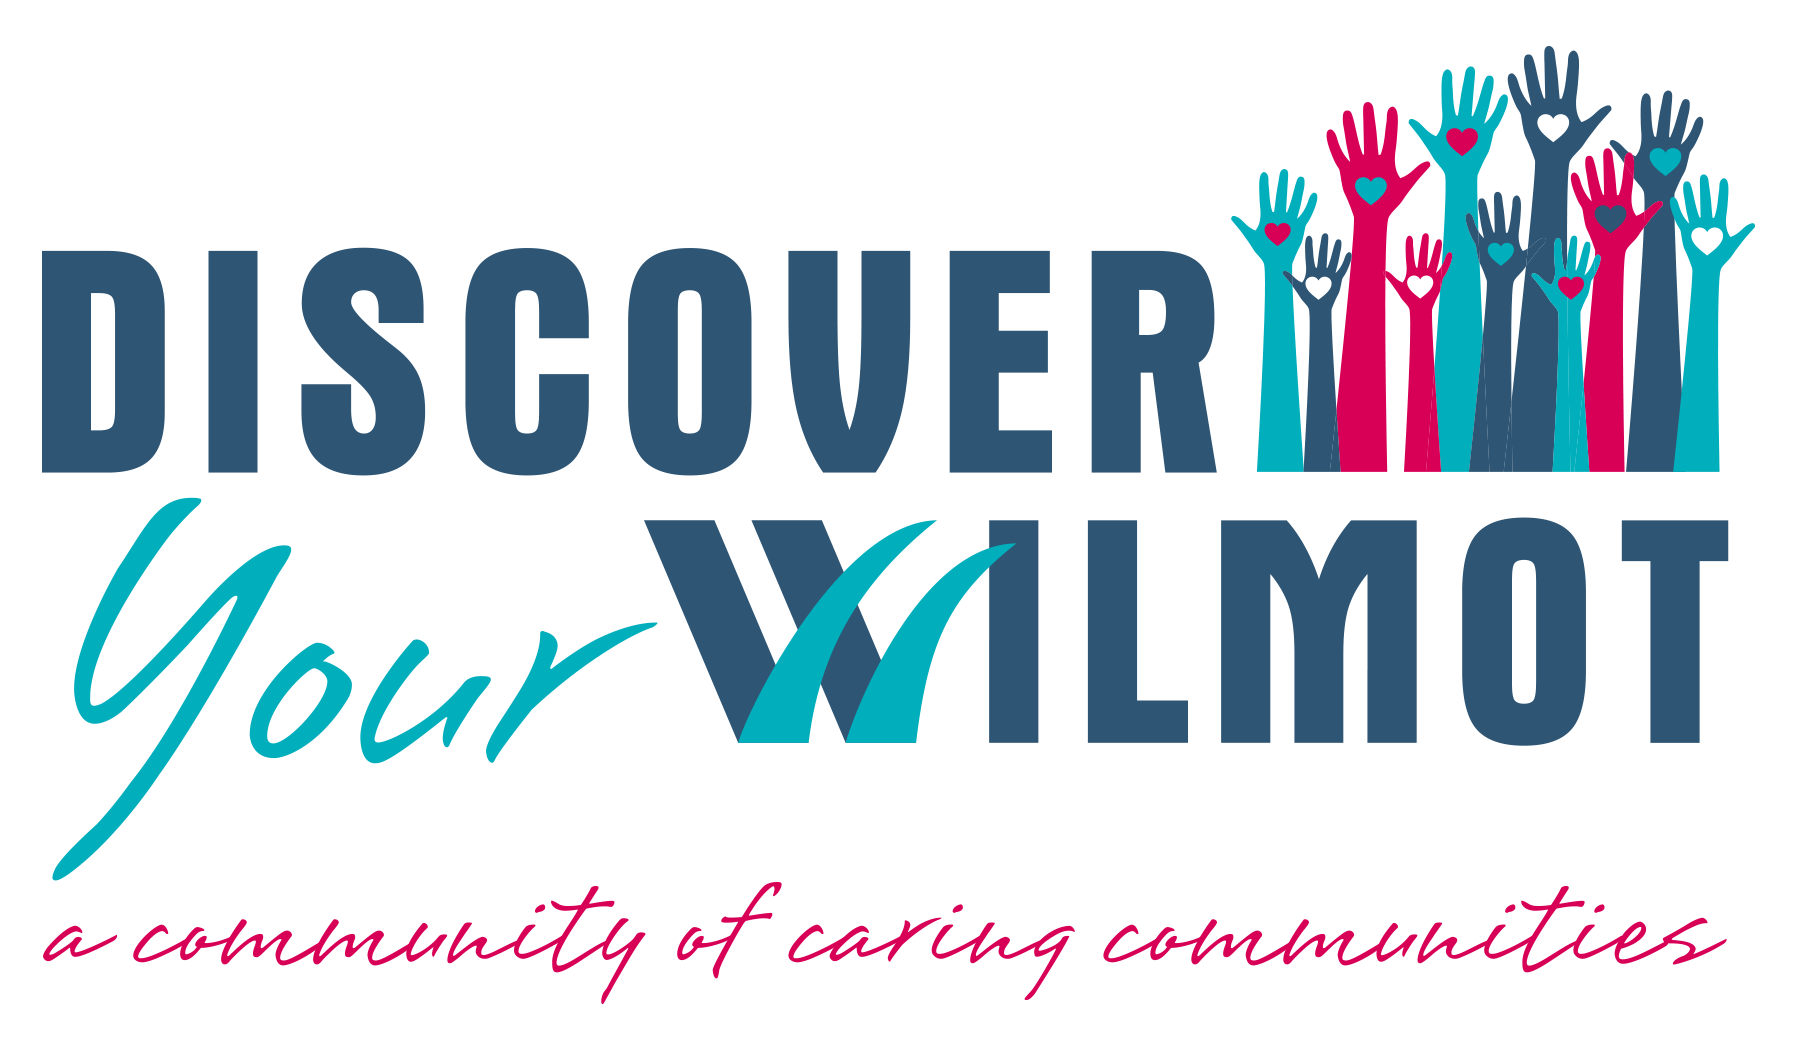 Discover Your Wilmot with tag high res - Copy.png